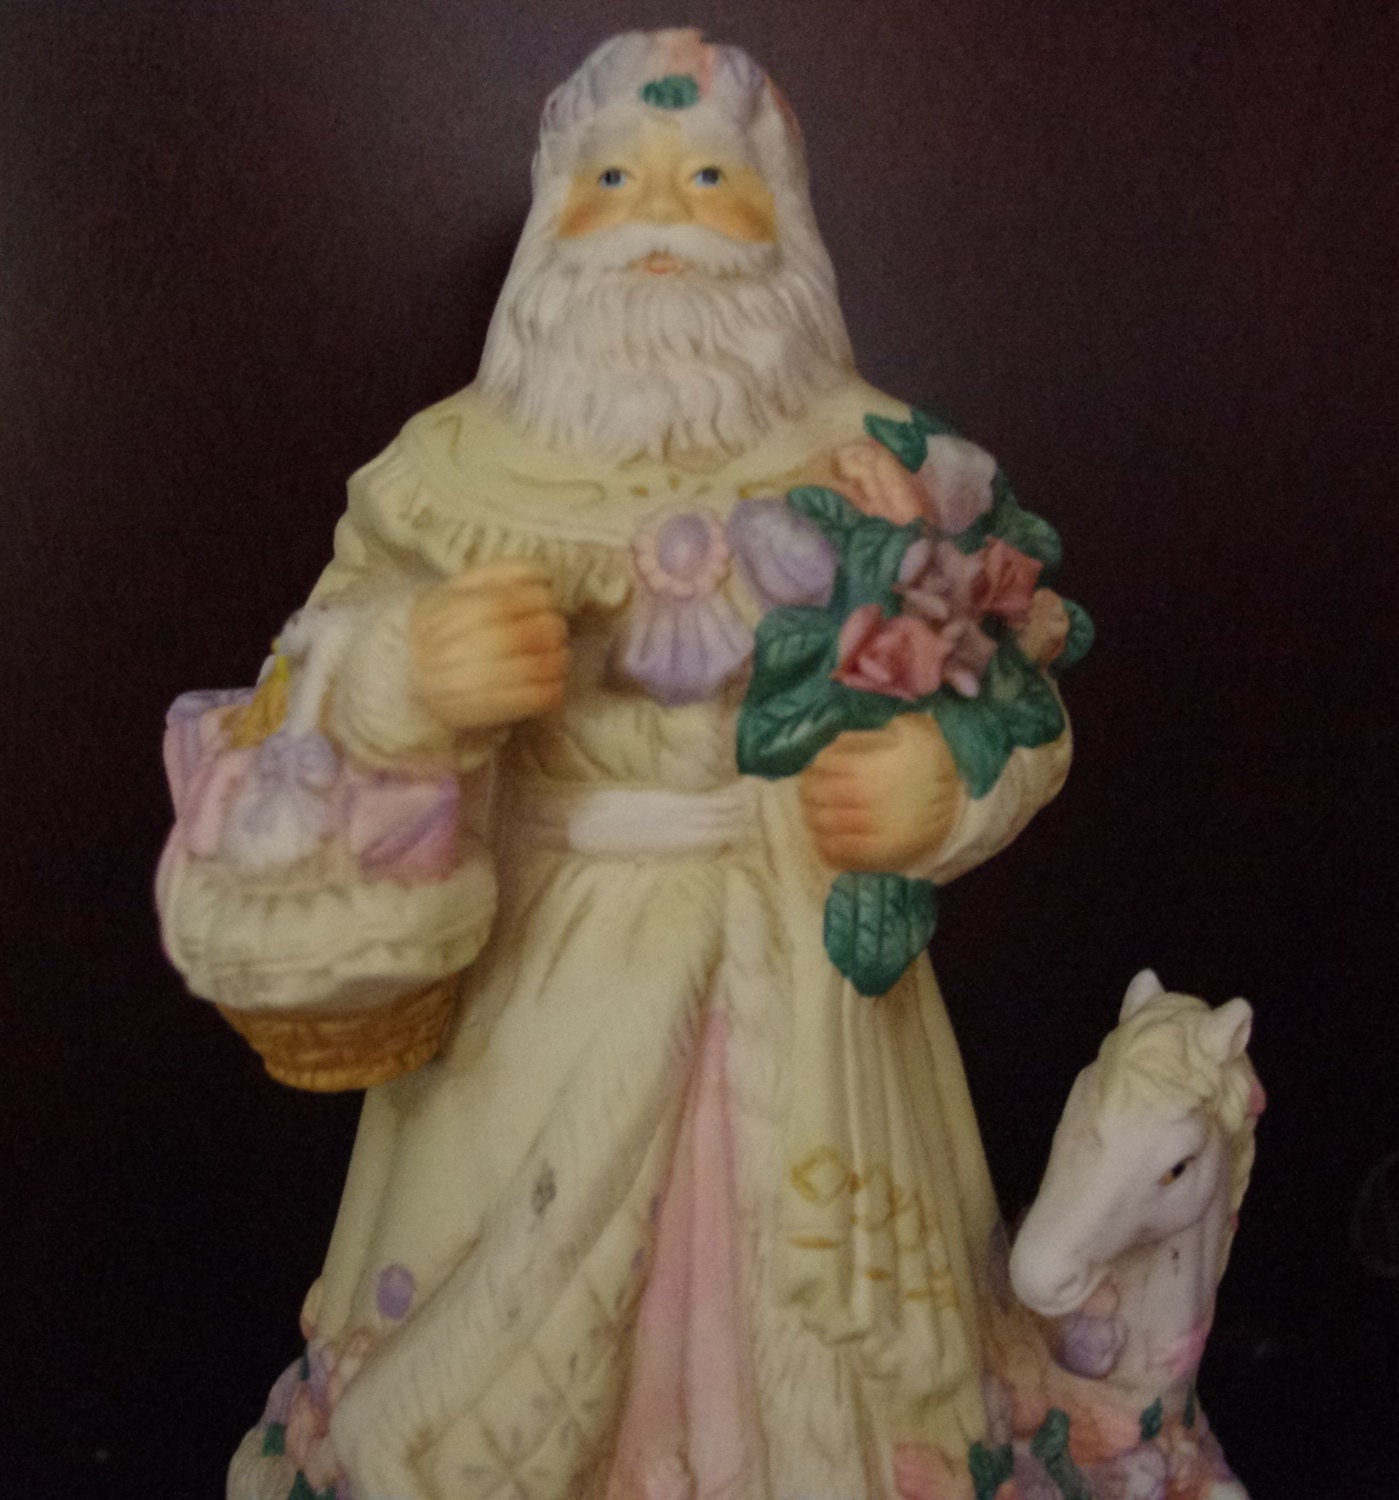 Vintage santa claus figurine with horse or pony music box